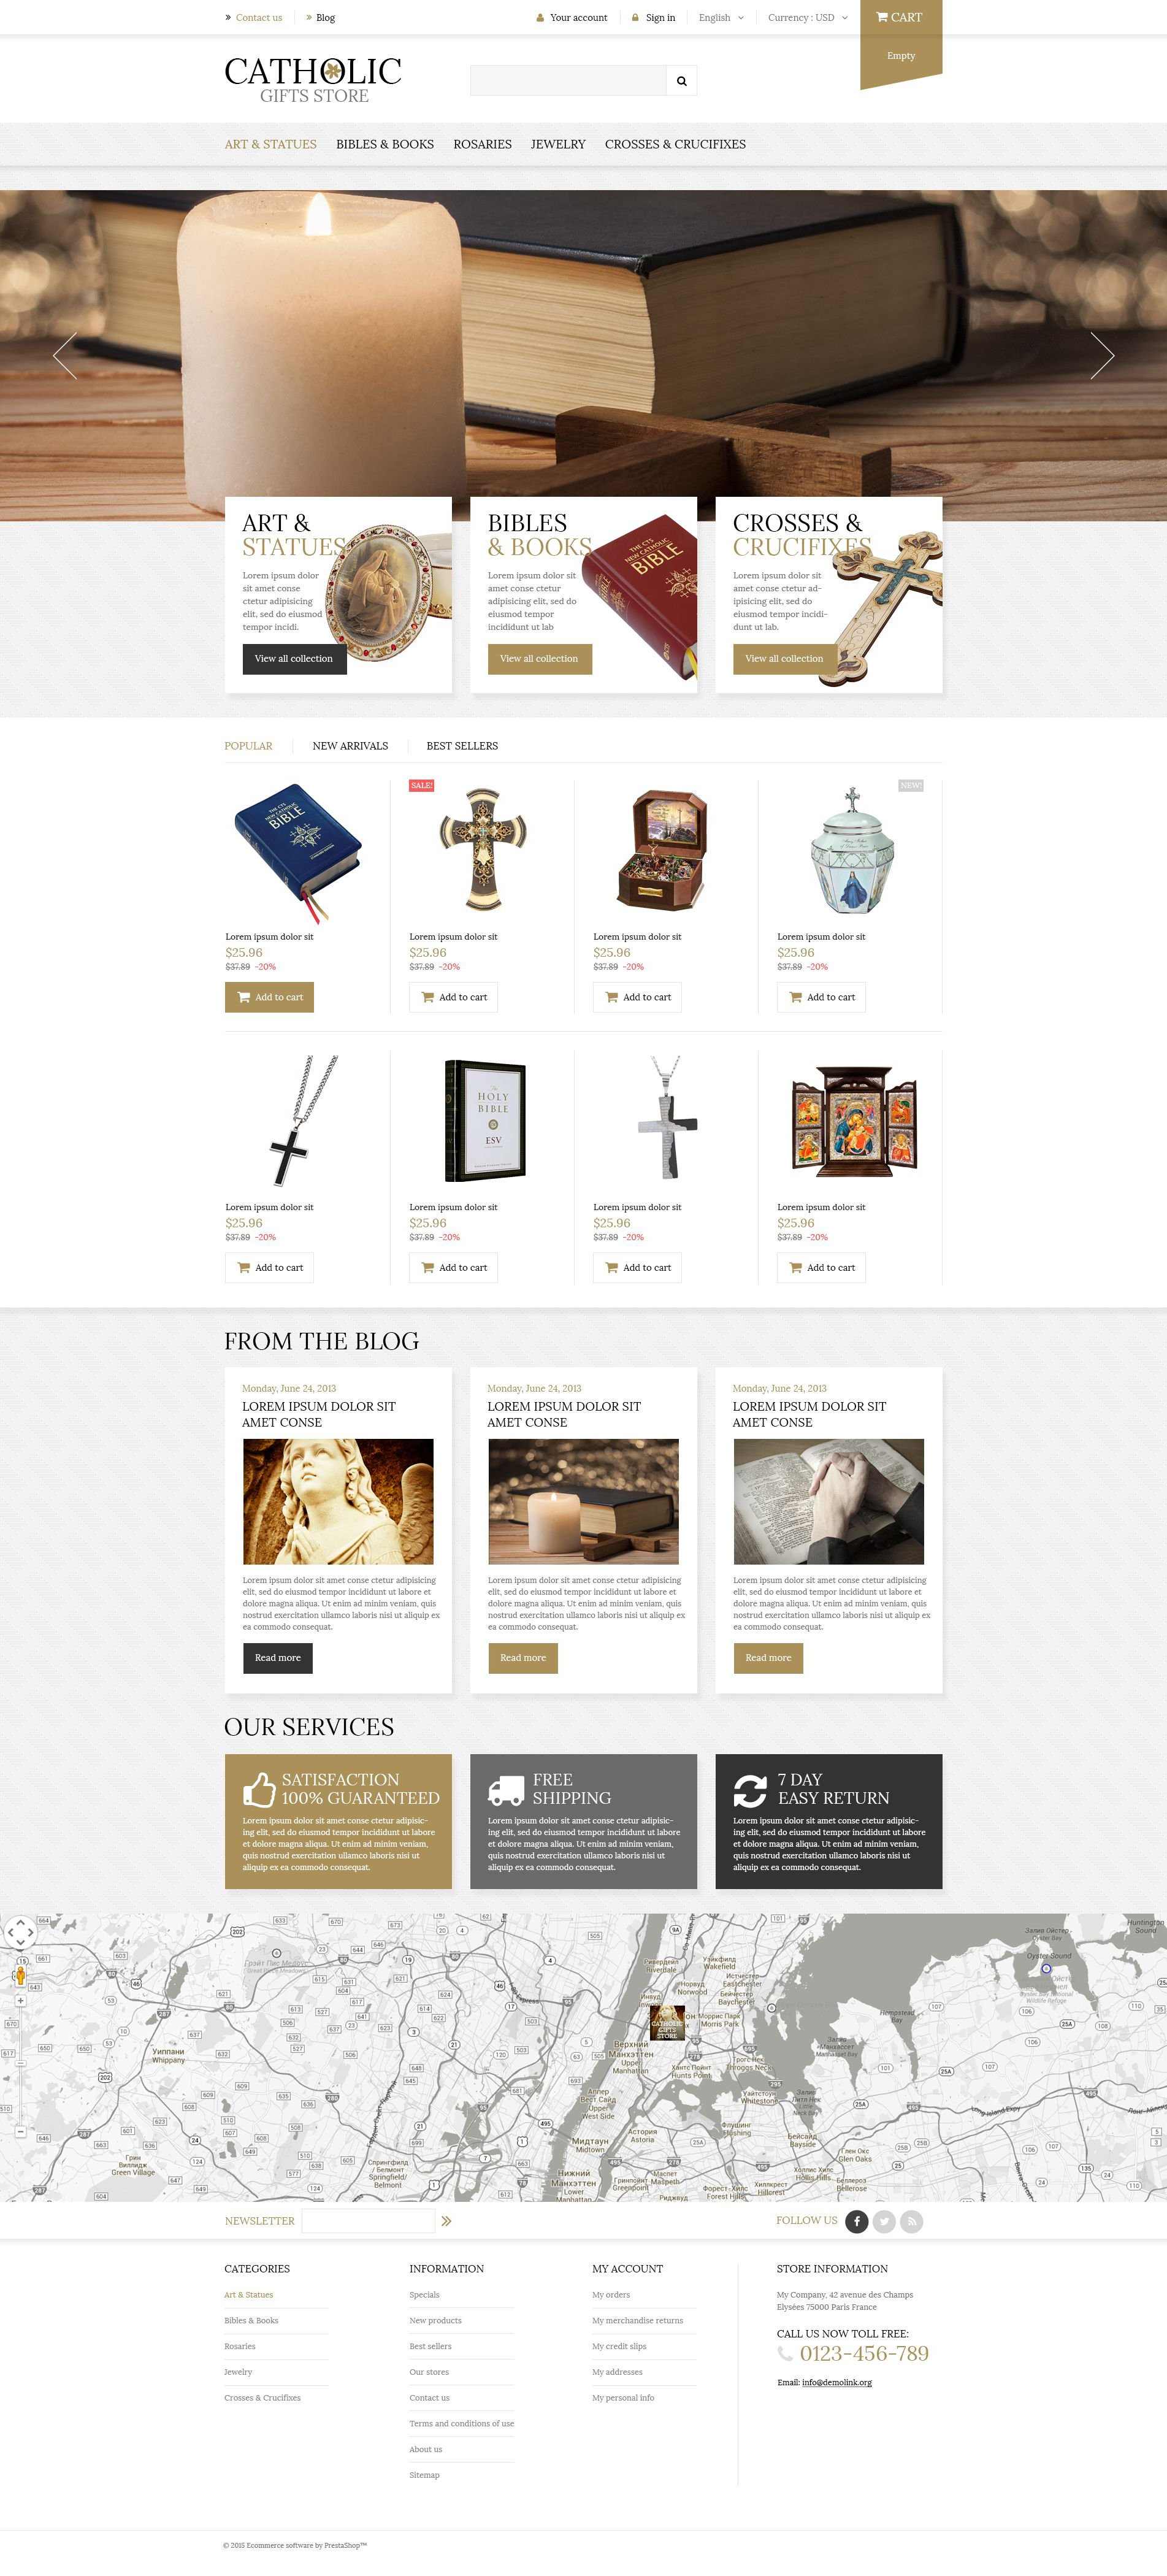 The Catholic Gifts PrestaShop Design 53320, one of the best PrestaShop themes of its kind (religious, most popular), also known as catholic gifts PrestaShop template, gift store PrestaShop template, online presents PrestaShop template, candle PrestaShop template, accessory PrestaShop template, books and related with catholic gifts, gift store, online presents, candle, accessory, books, etc.